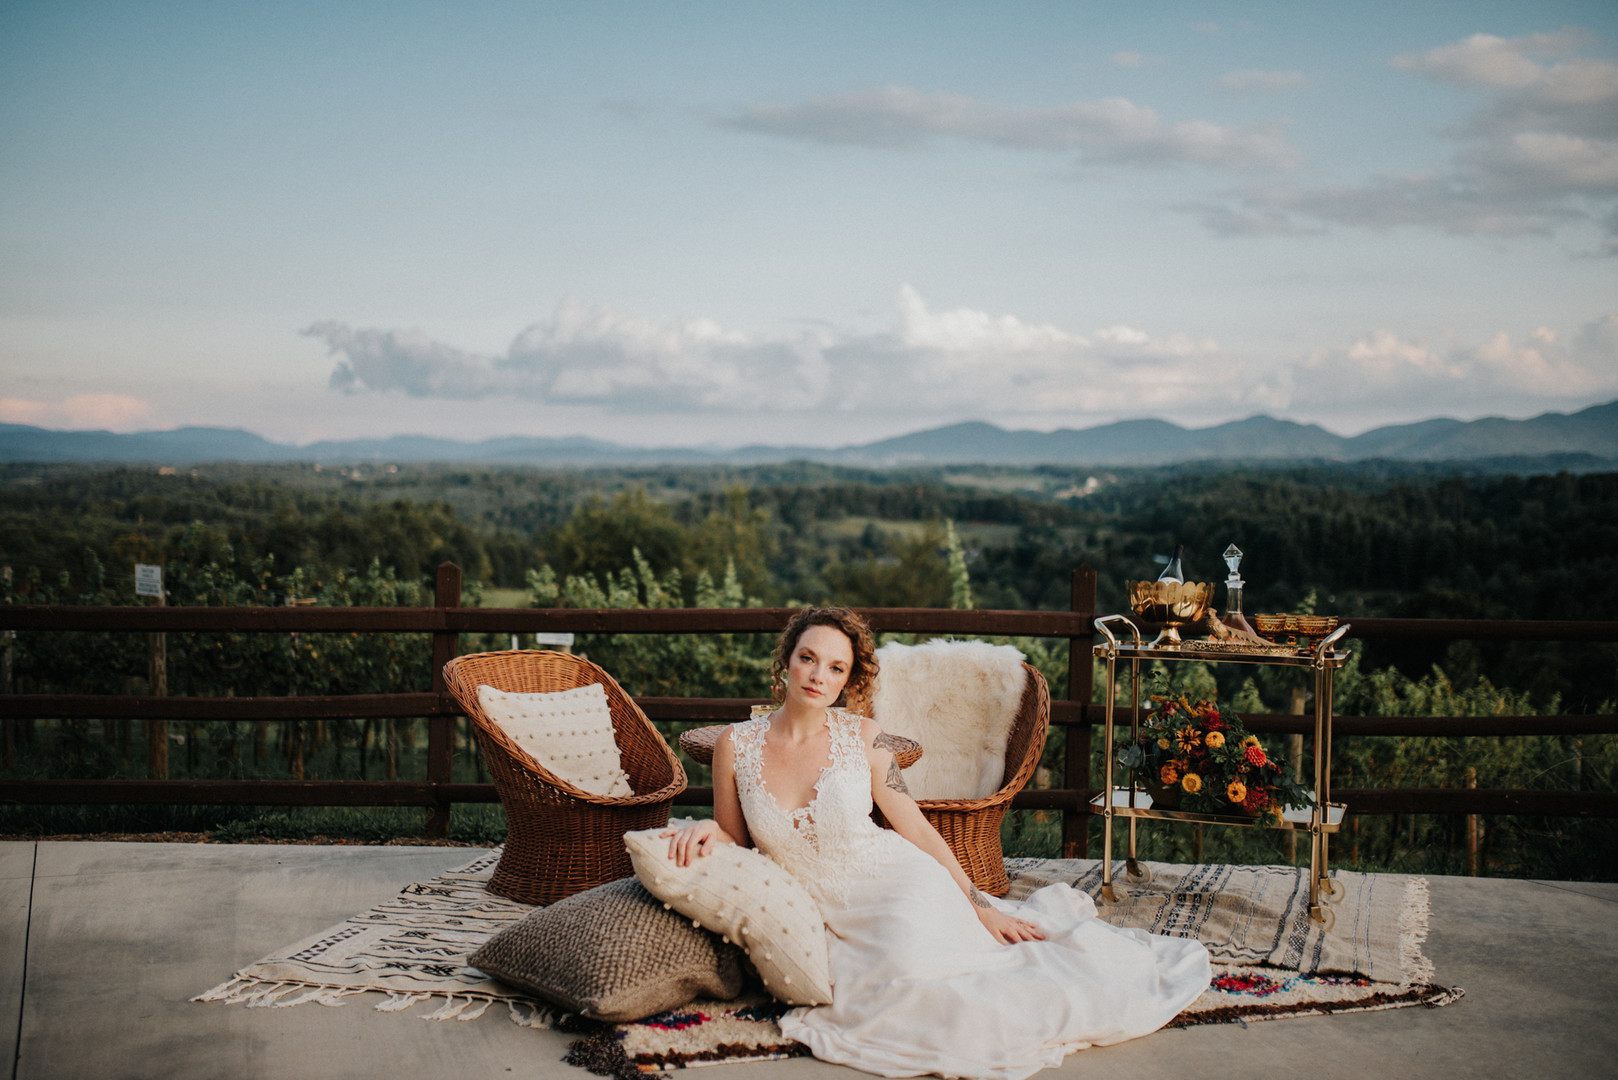 Moonlit Vineyard Wedding in the Blue Ridge Mountains